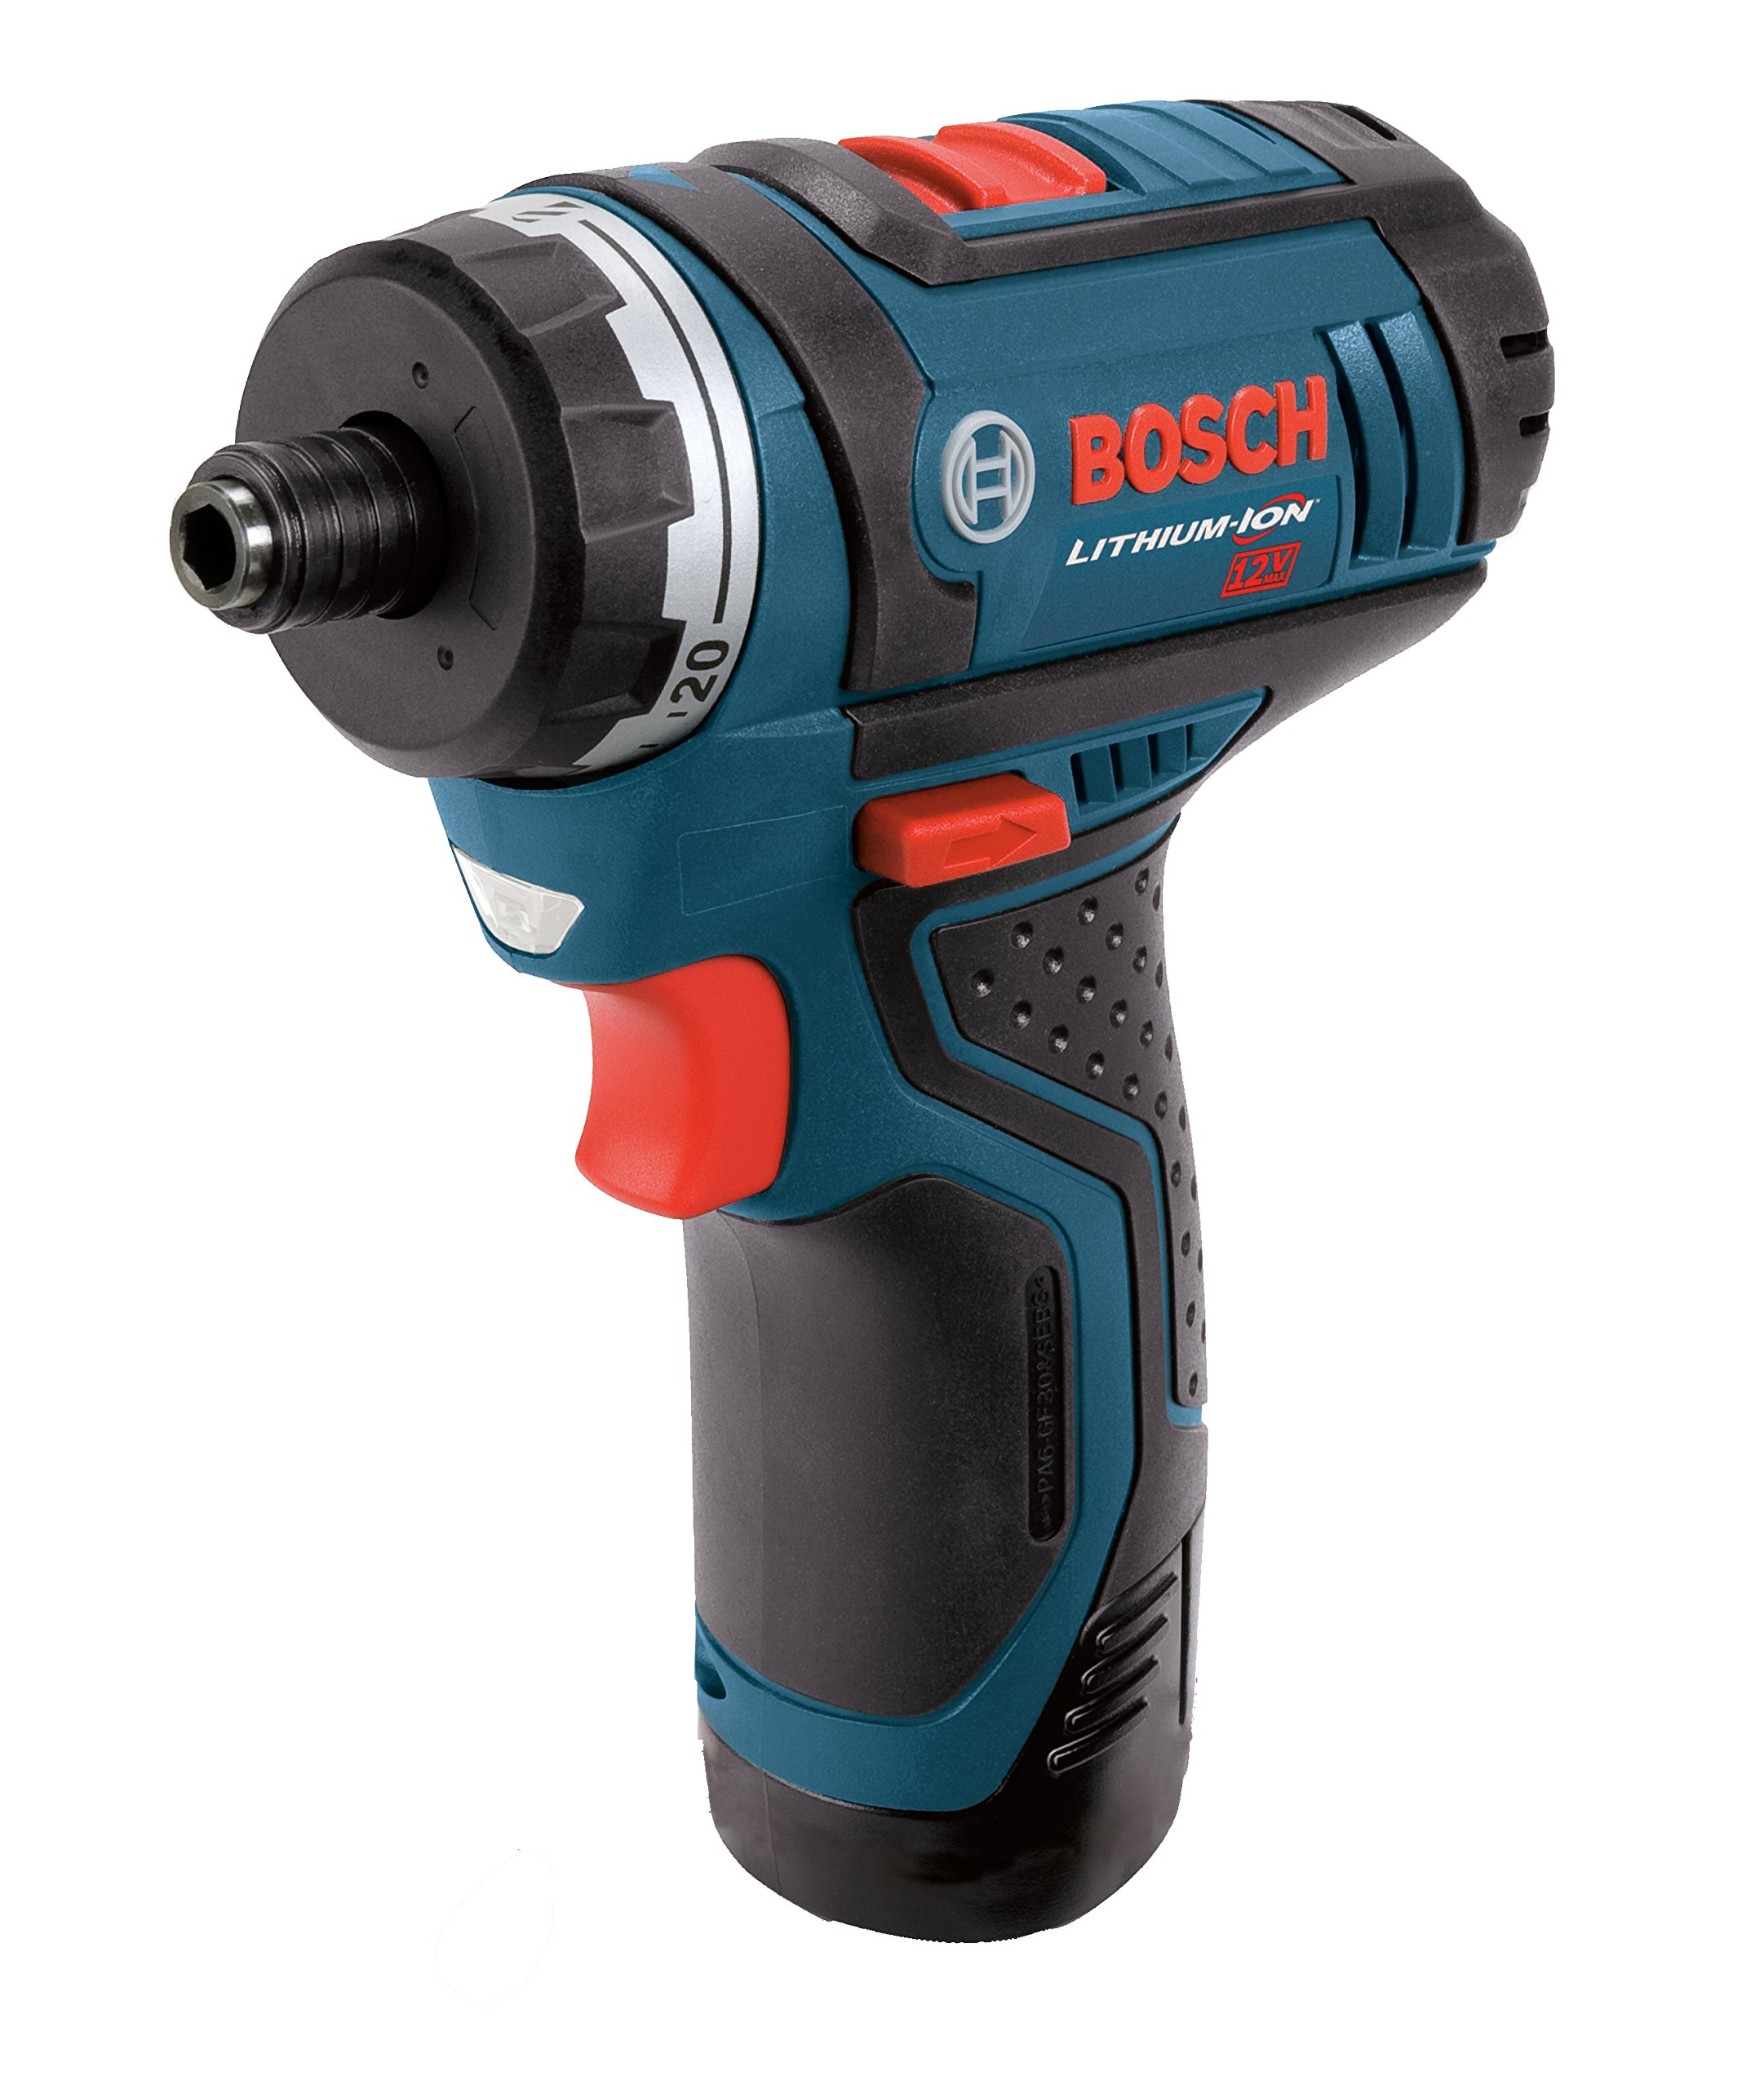 Bosch PS21-2A 12-Volt Max Lithium-Ion 2-Speed Pocket Driver Kit with 2 Batteries, Charger and Case by Bosch (Image #2)